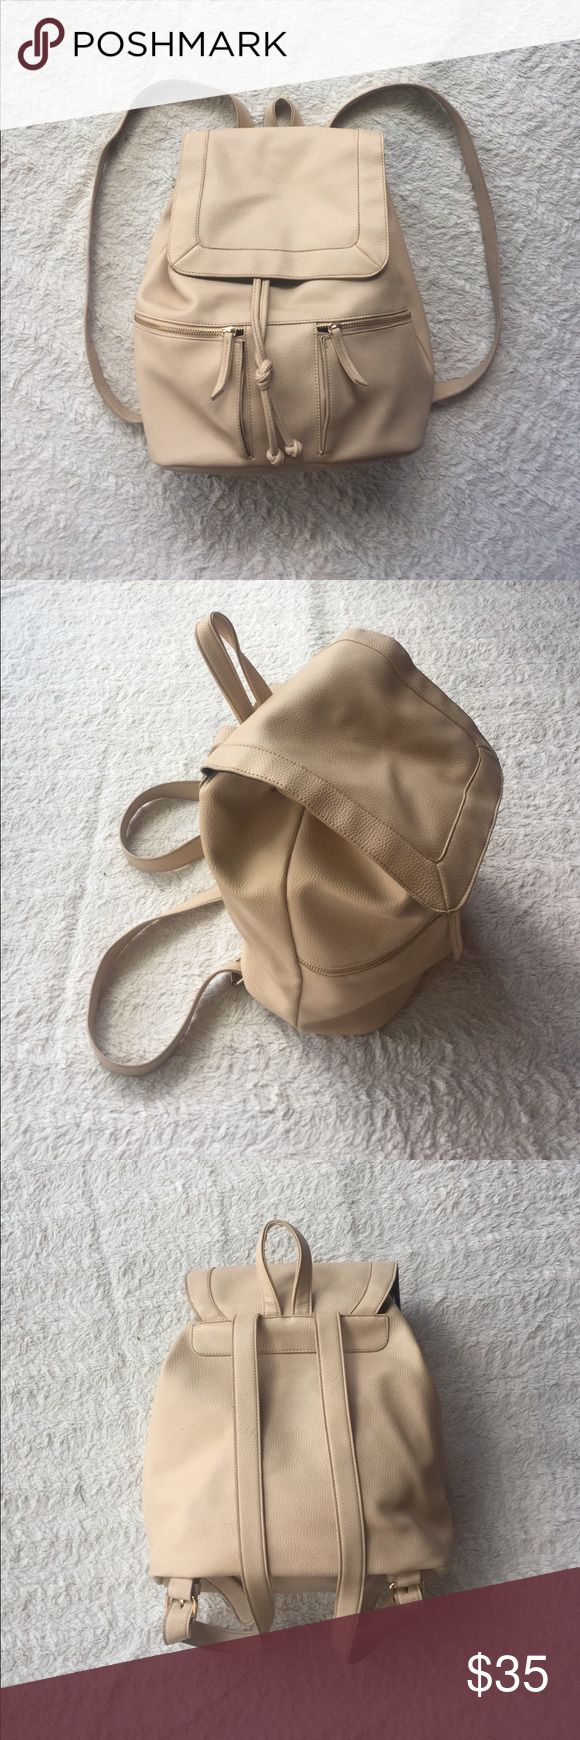 Cream Backpack Super cute - cream colored backpack. Has adjustable drawstring and magnetic top closure. Top handle - adjustable shoulder straps. Two front, functional zippers. Zippers are gold. One large zipper closure pocket on inside. Has some small marks from light use - all shown in photos. A great everyday bag! Bags